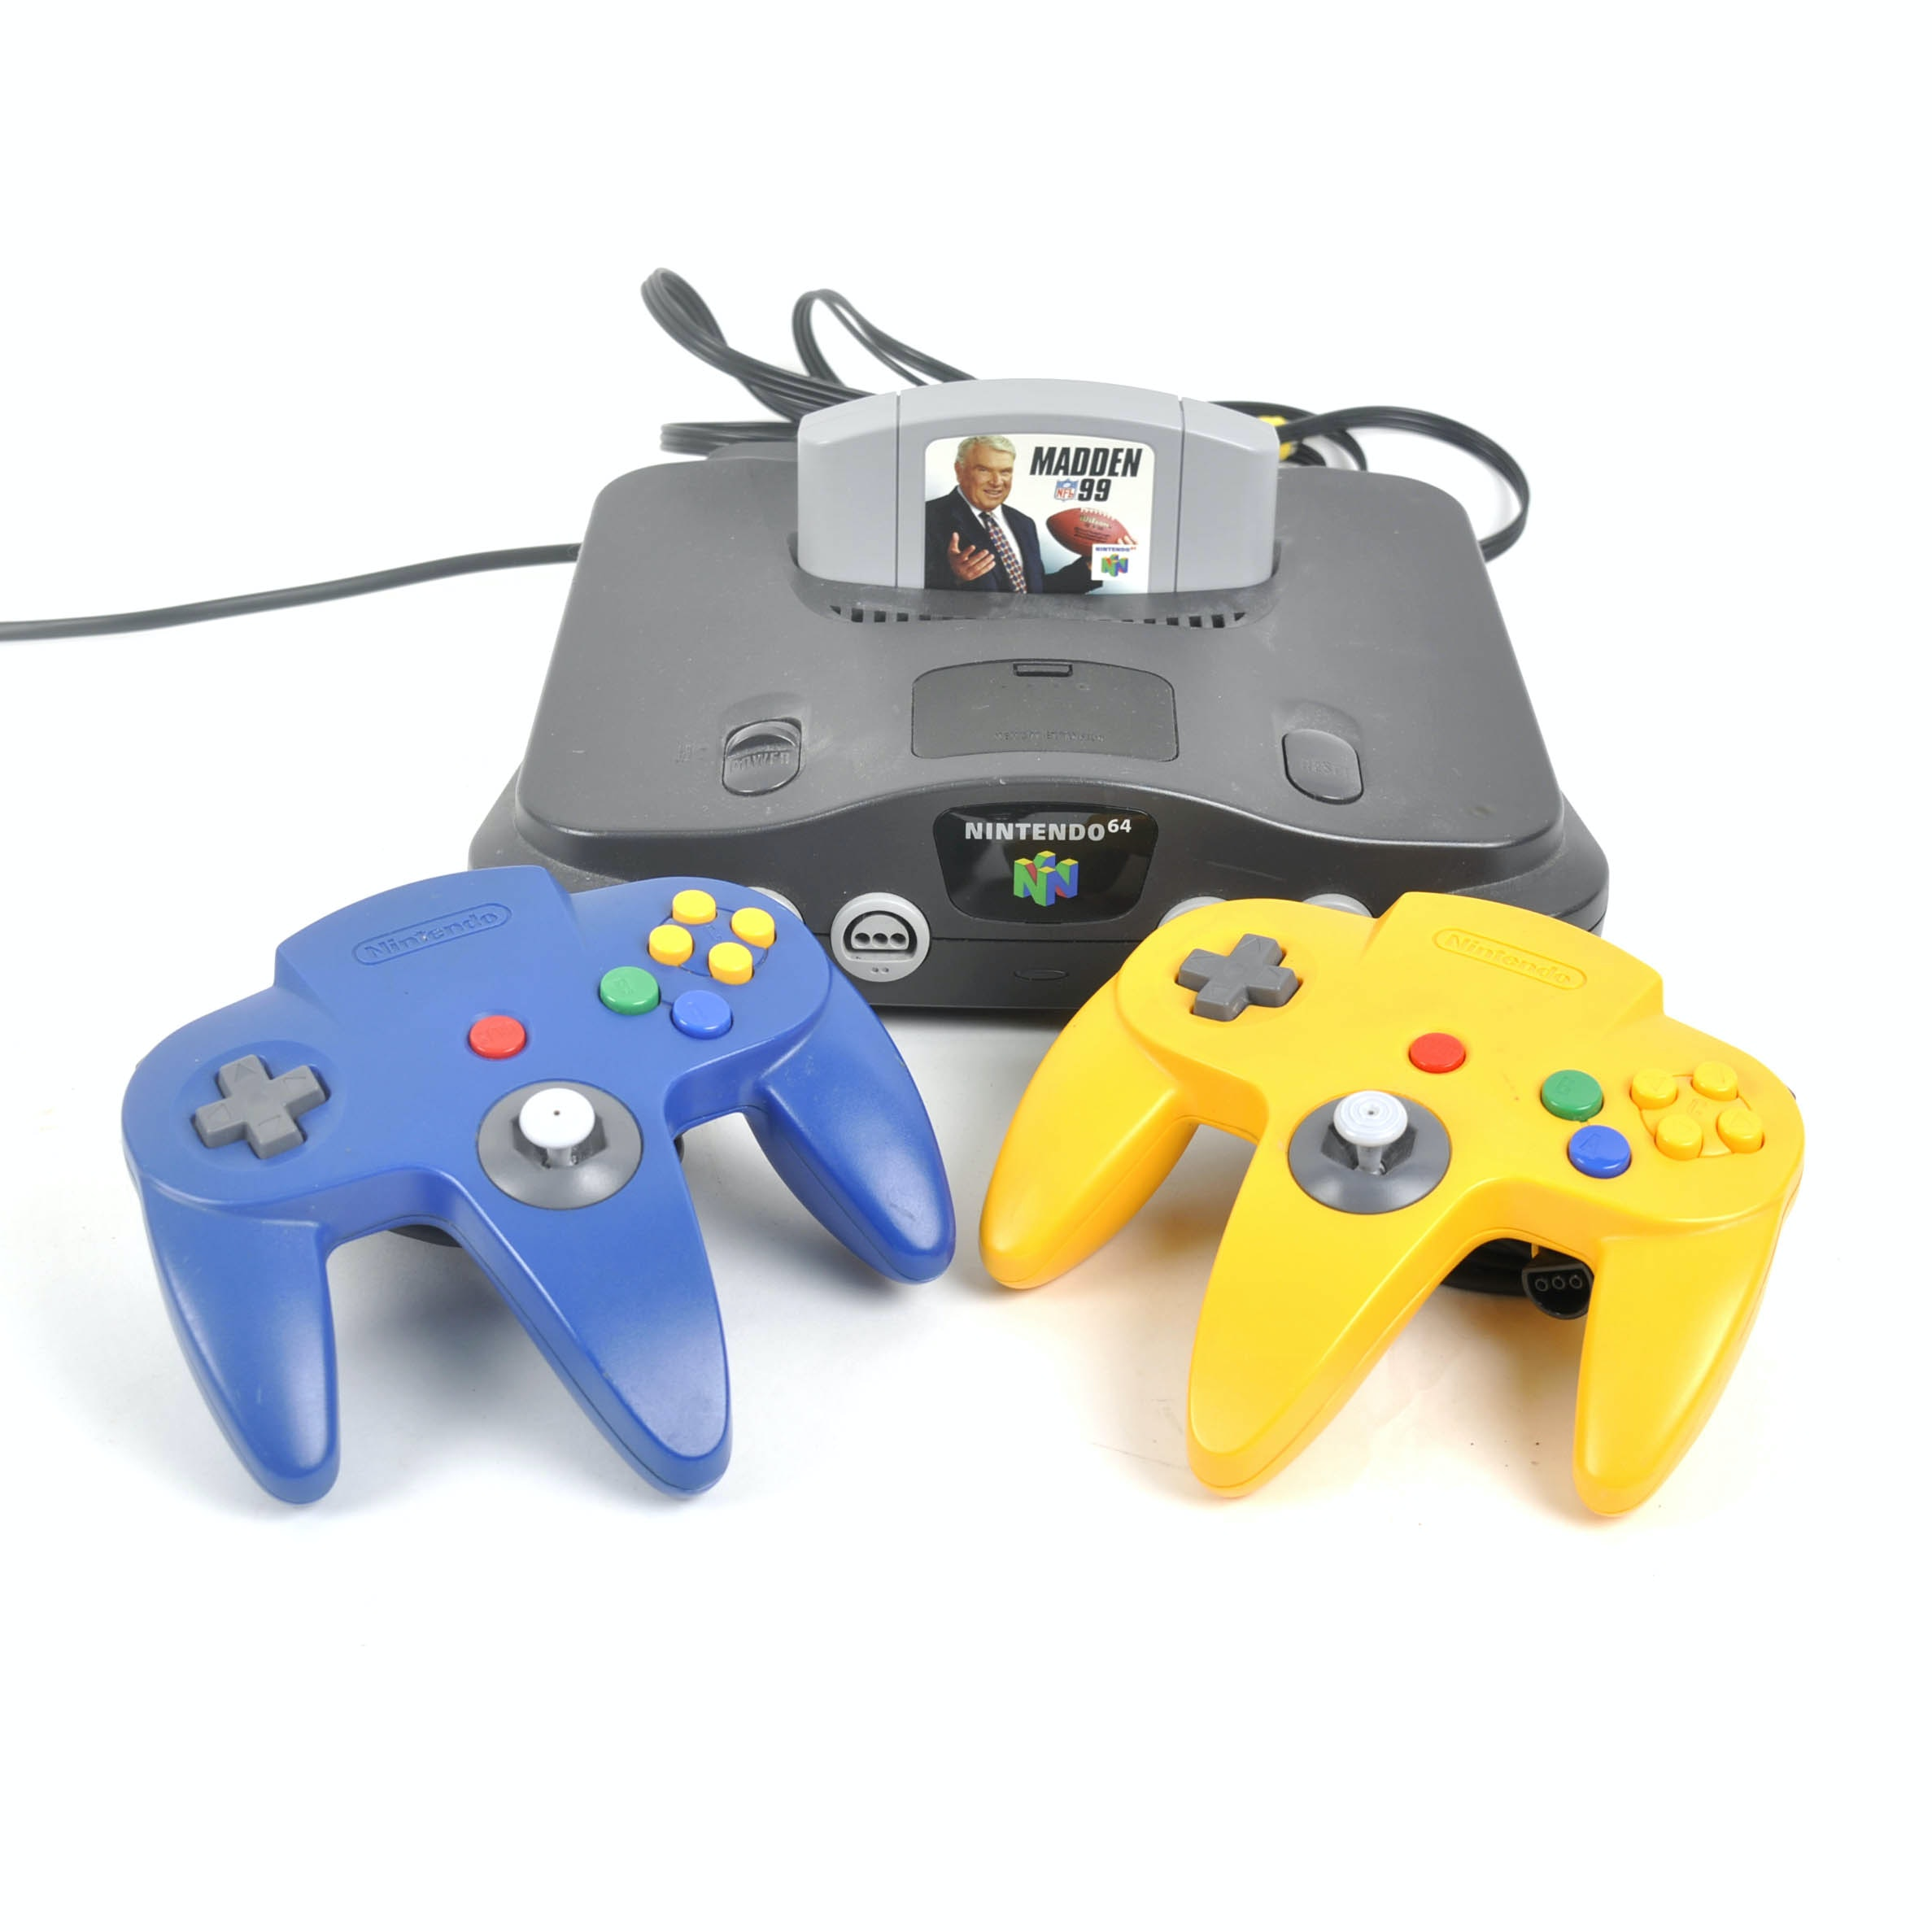 "Nintendo 64 Video Game Console with Controllers and ""Madden 99"""